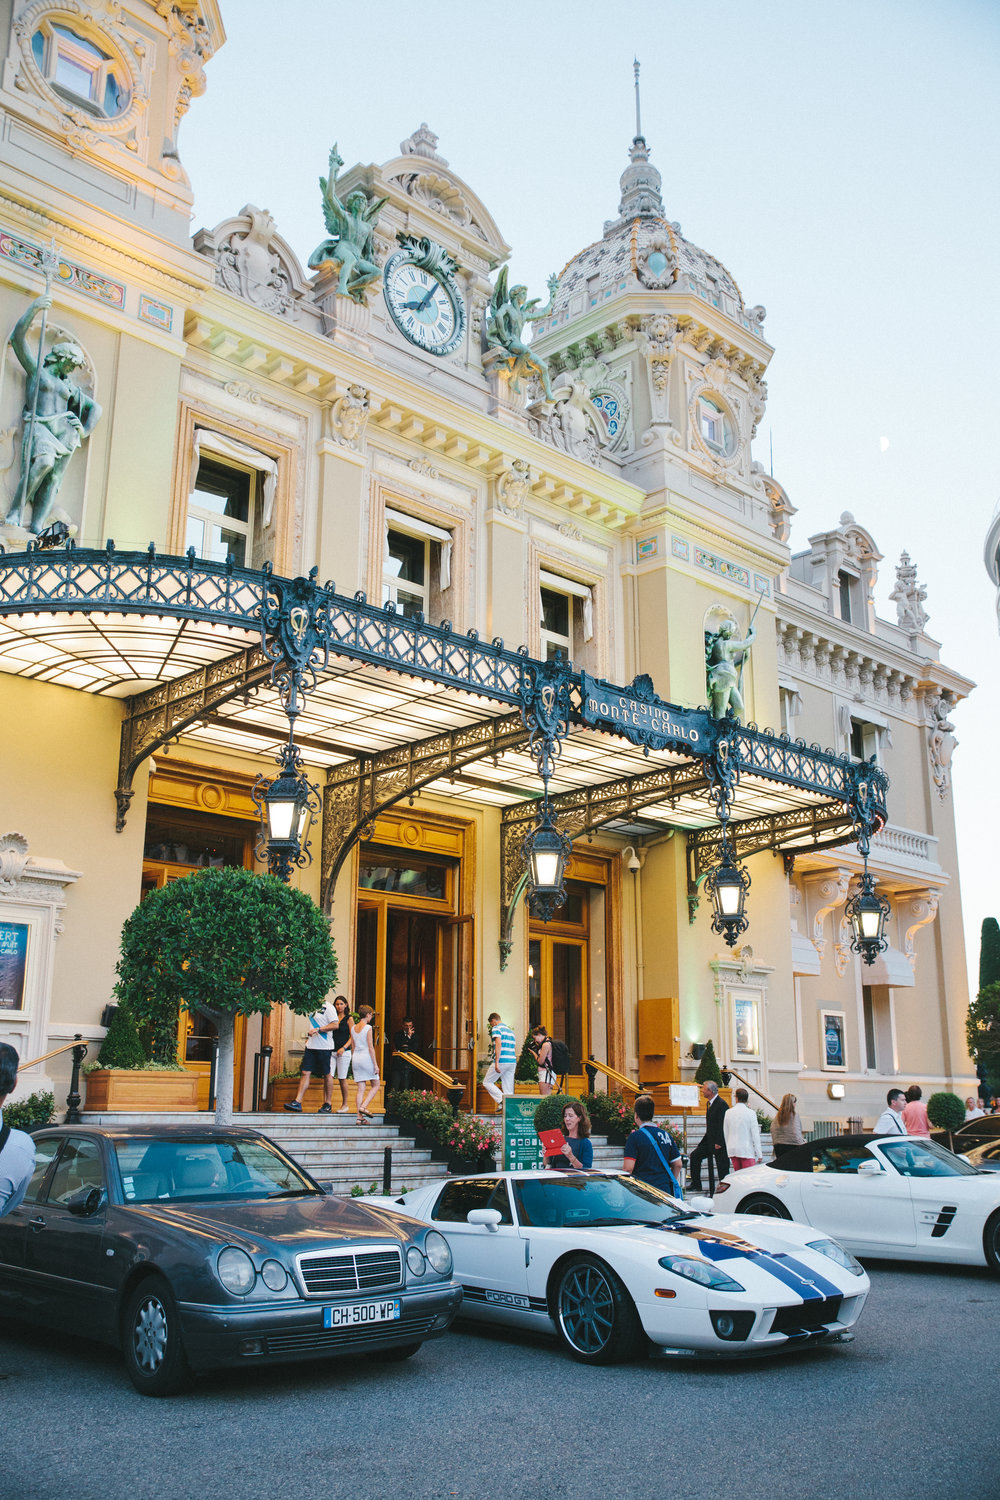 On our only day in Monaco, we were declined entrance to the world famous Monte-Carlo Casino because we were wearing shorts.  It was a total bummer.